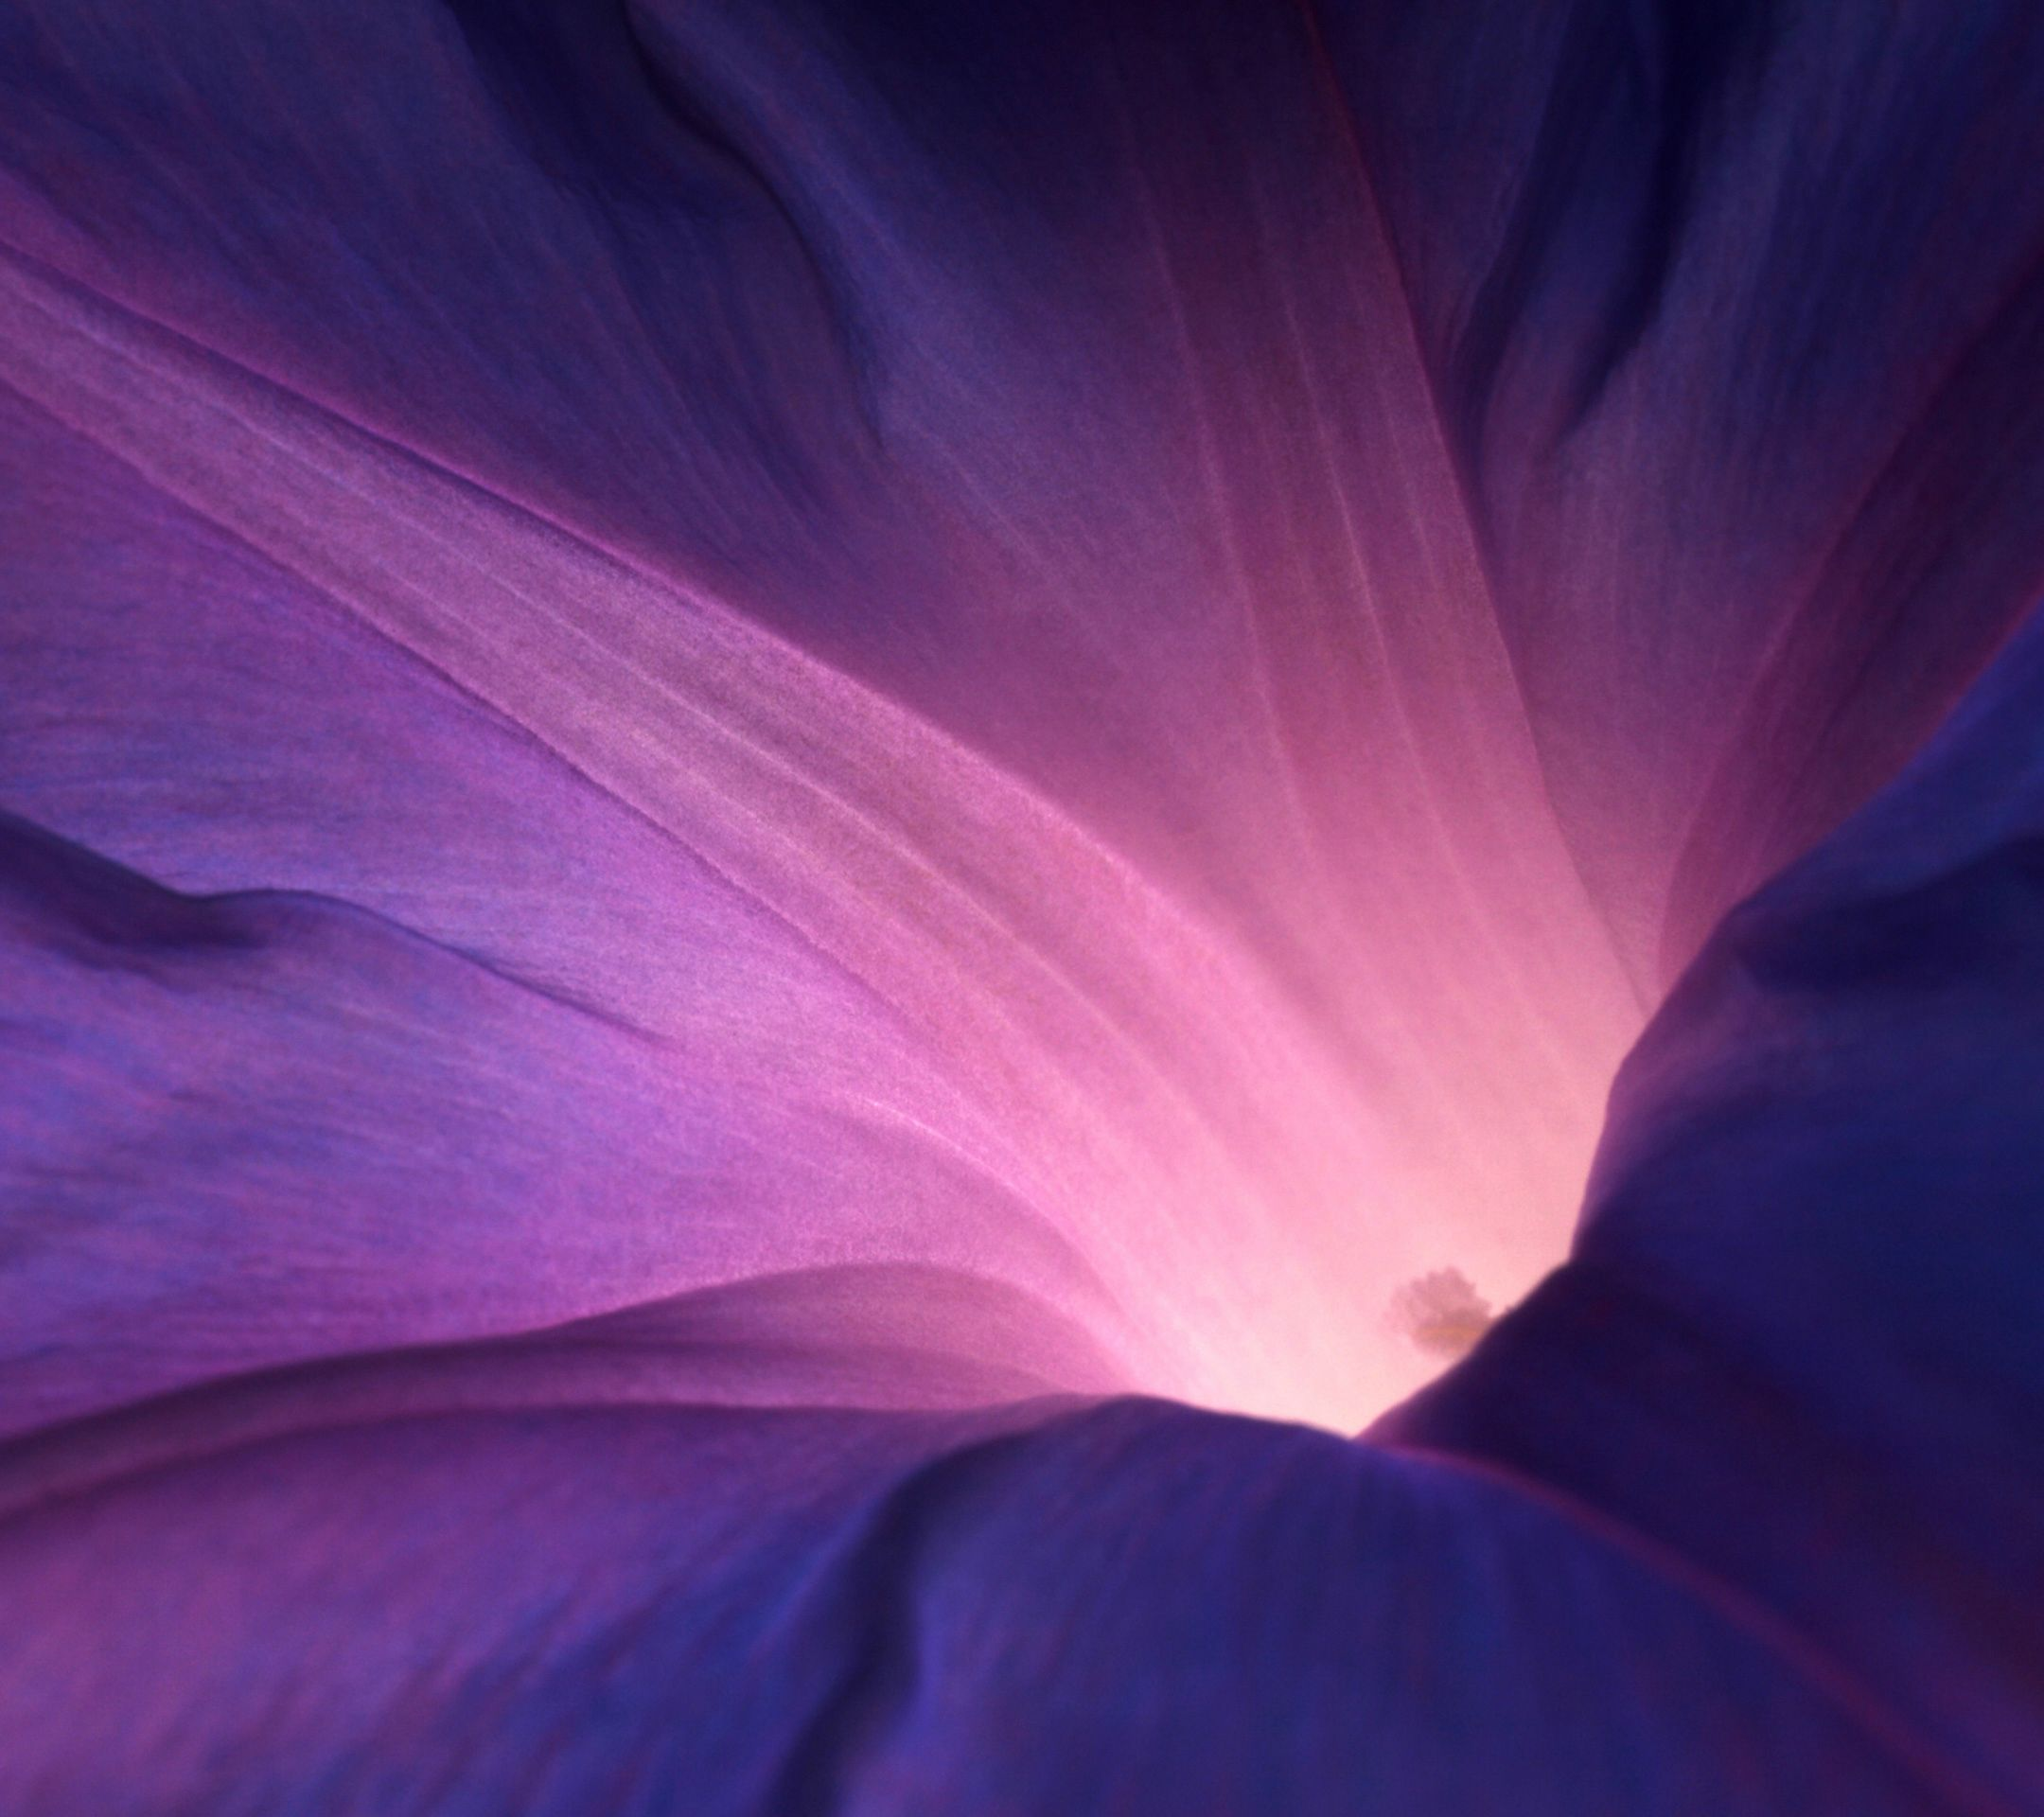 Sony Xperia Z2 Stock Wallpapers - Download HERE